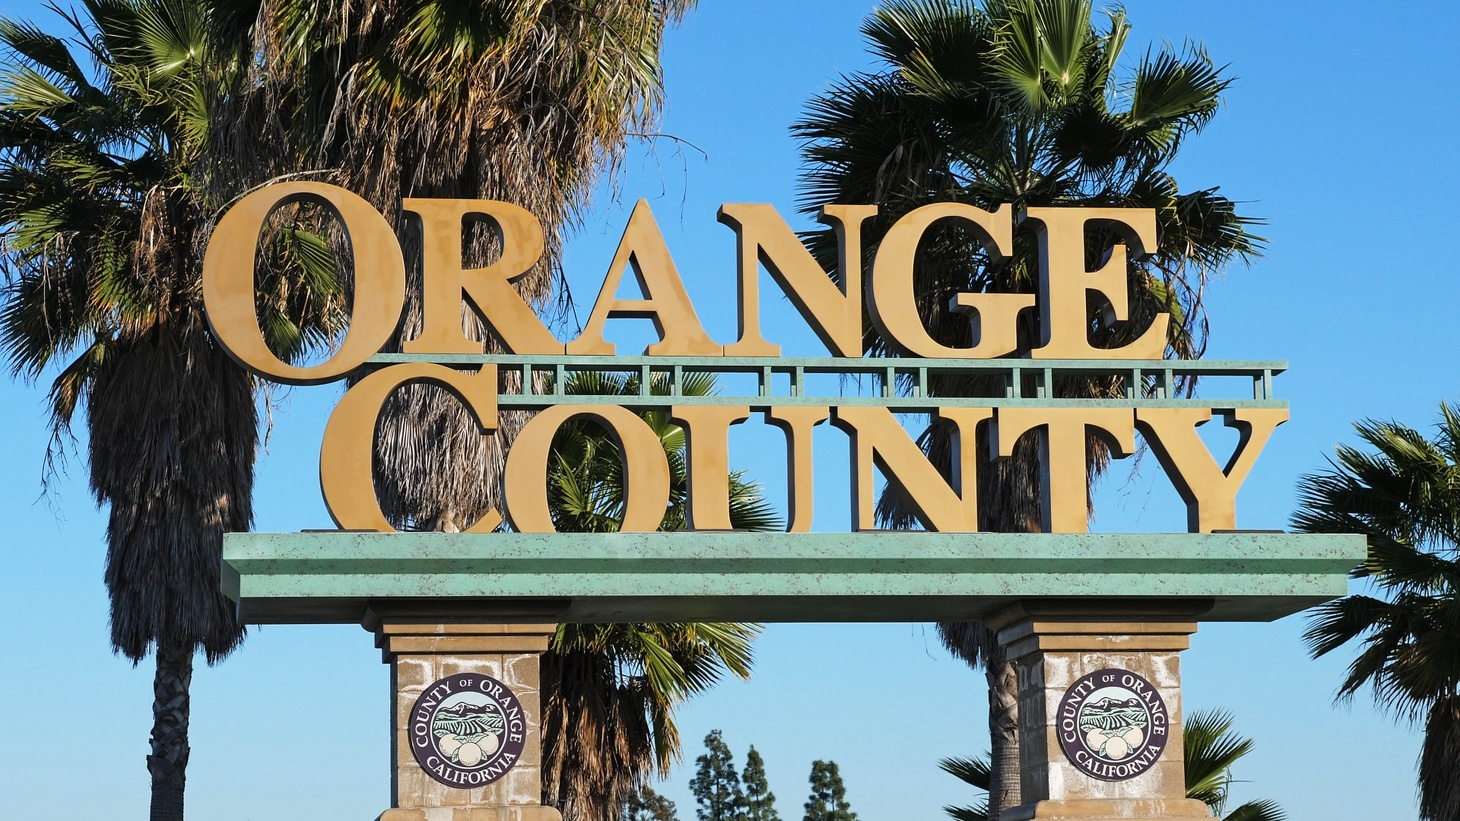 Some Orange County supervisors are pushing for longer consecutive term limits. A new ballot proposal would grant a lifetime limit of 12 years, which can be served consecutively.